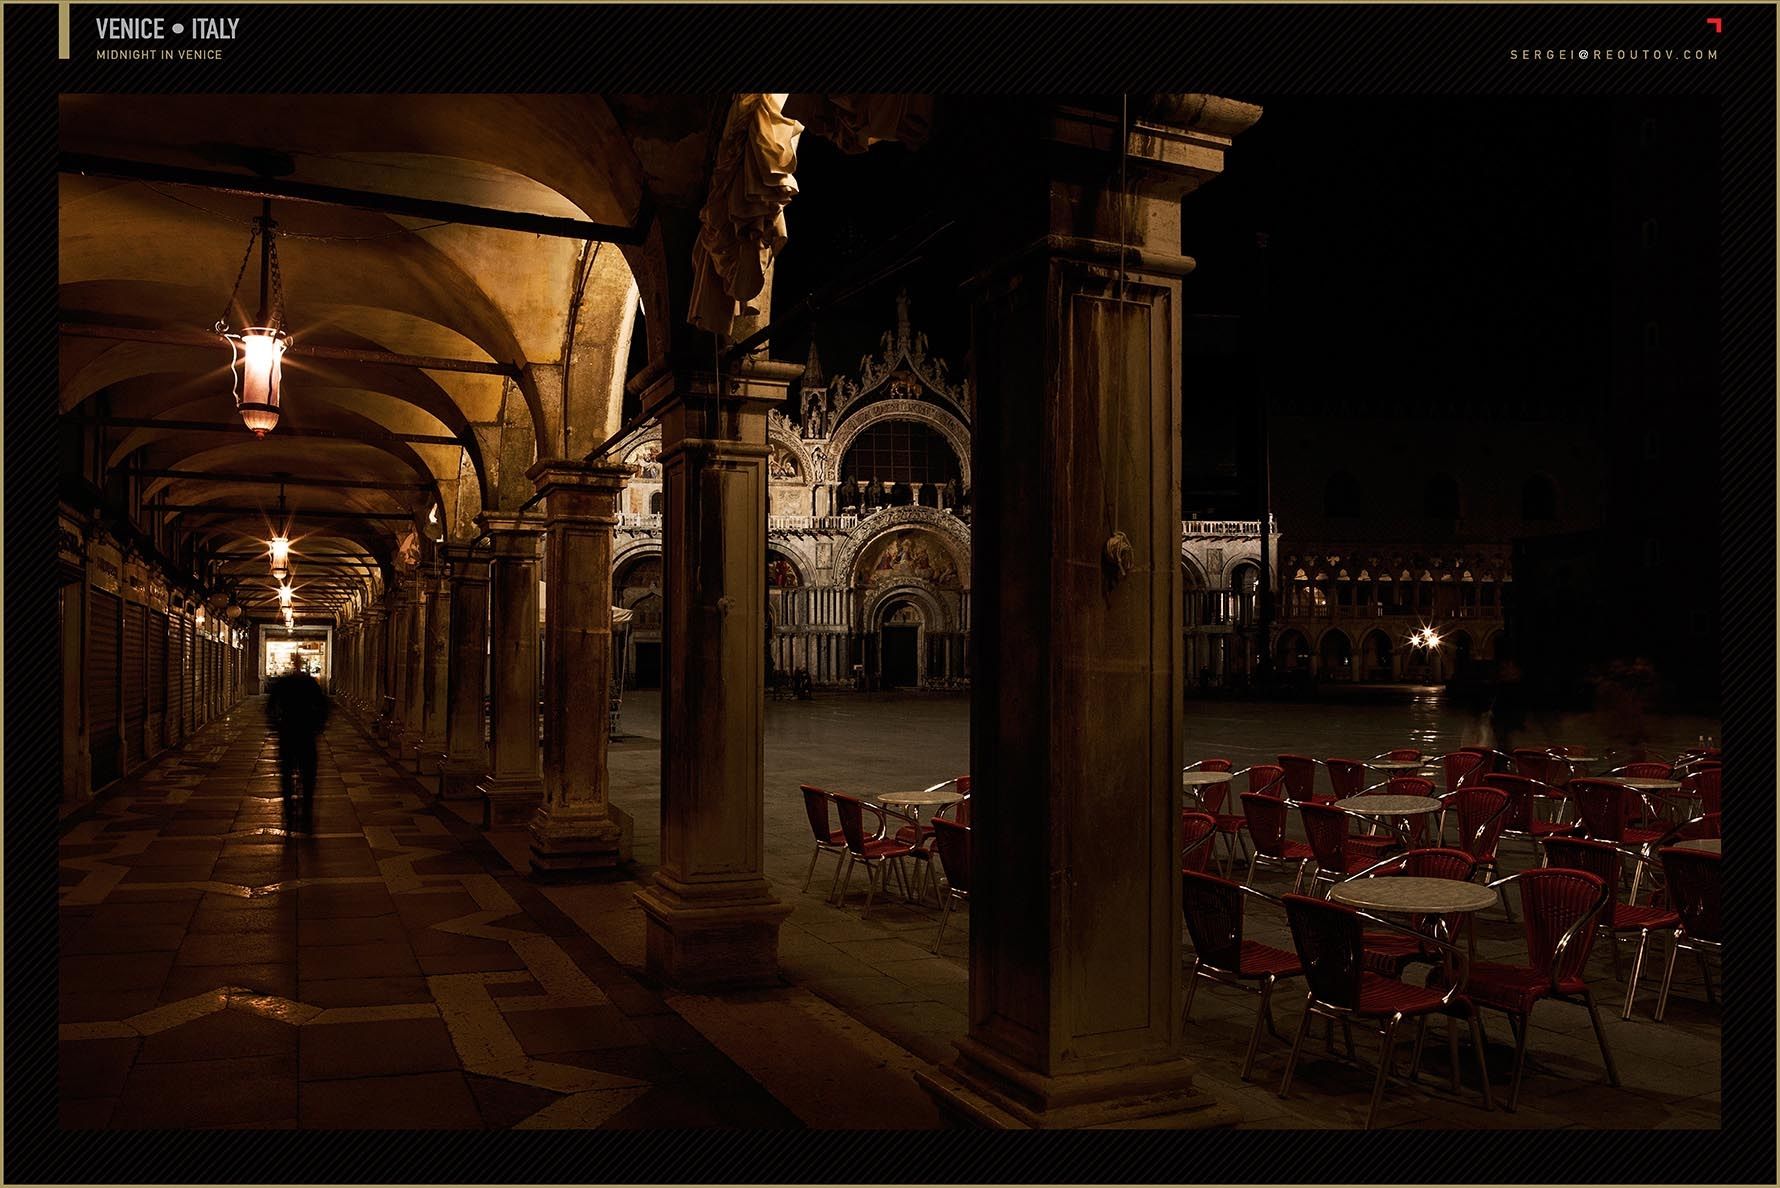 St Marco at midnight, Venice